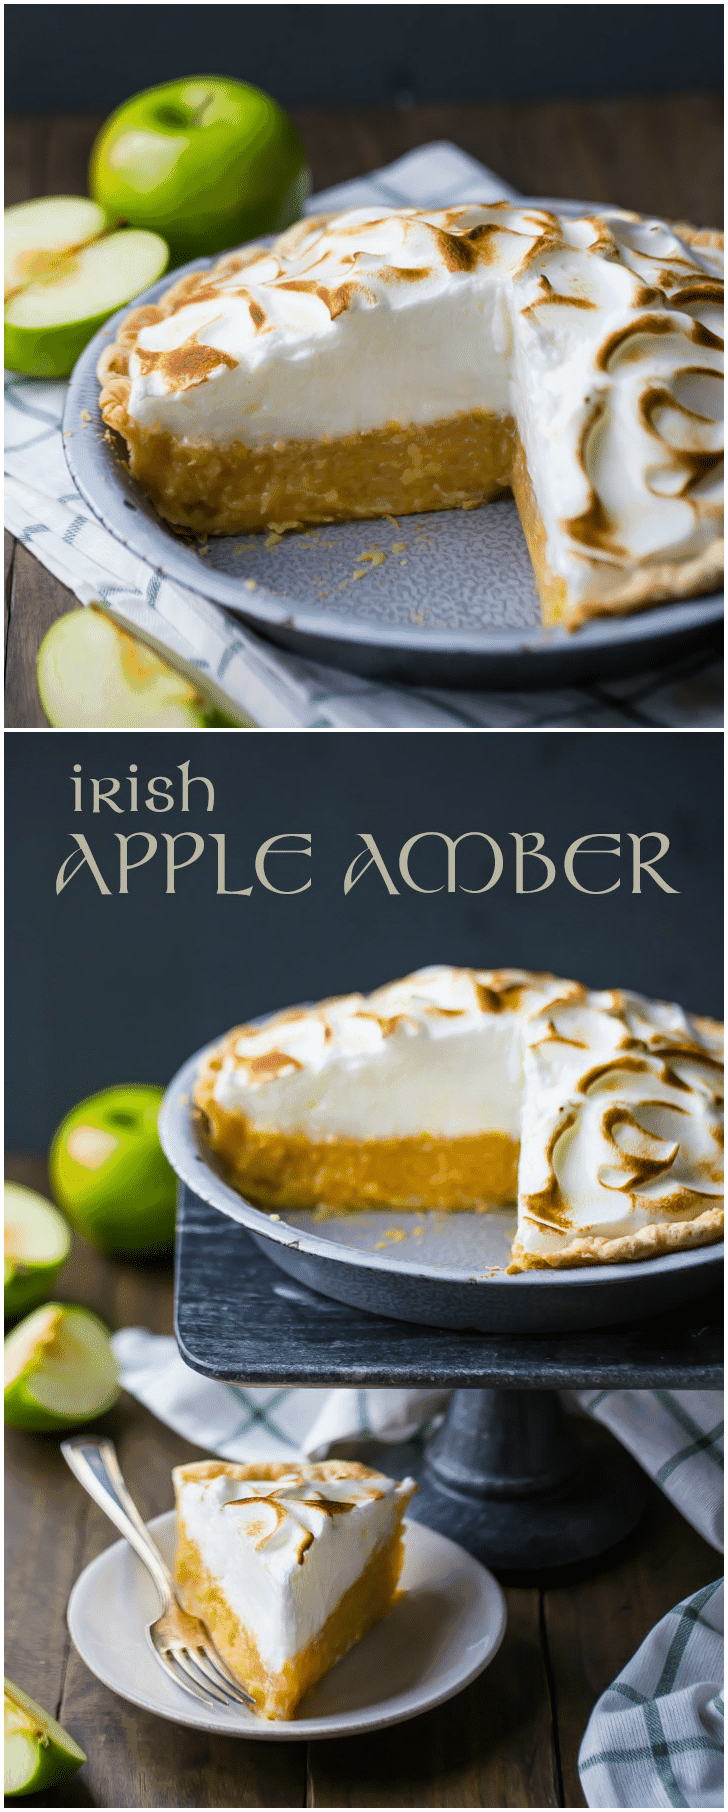 Celebrate St. Patrick's Day with this authentic Irish Apple Amber!  It's a traditional dessert in Ireland, made with shredded apples cradled in a buttery crust and topped with airy meringue. #irish #apple #desserts #pie #meringue #stpatricksday #ideas #stpattys